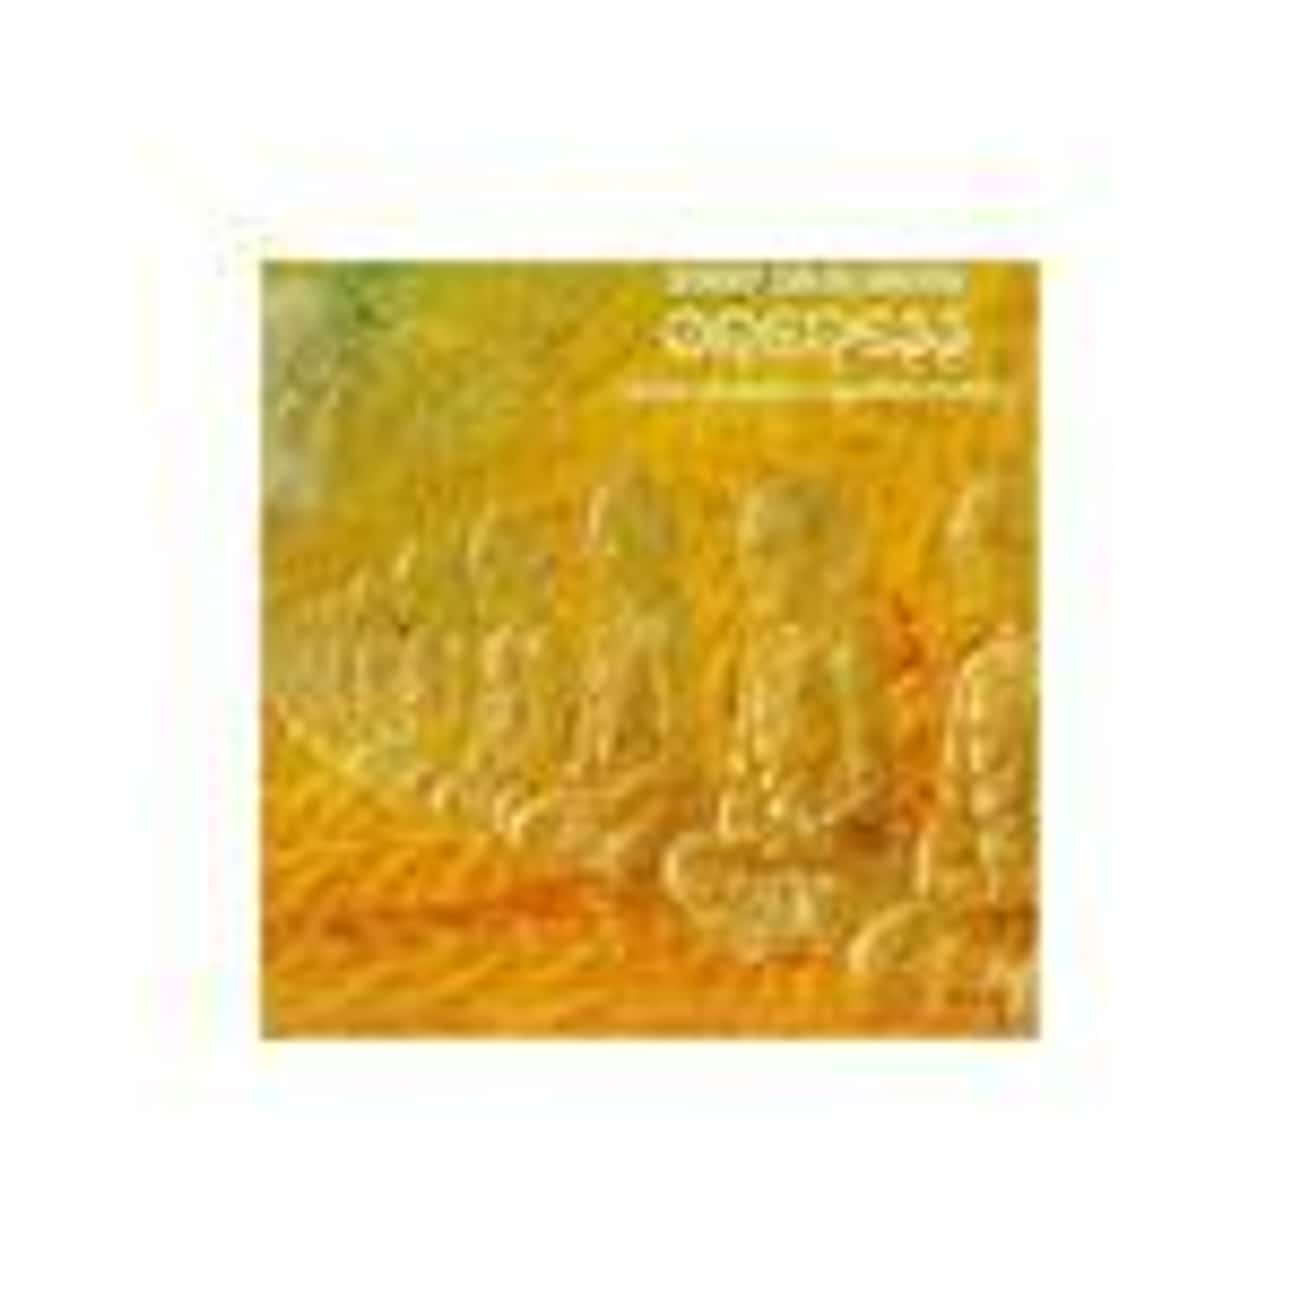 Oneness: Silver Dreams - Golde is listed (or ranked) 4 on the list The Best Carlos Santana Albums of All Time